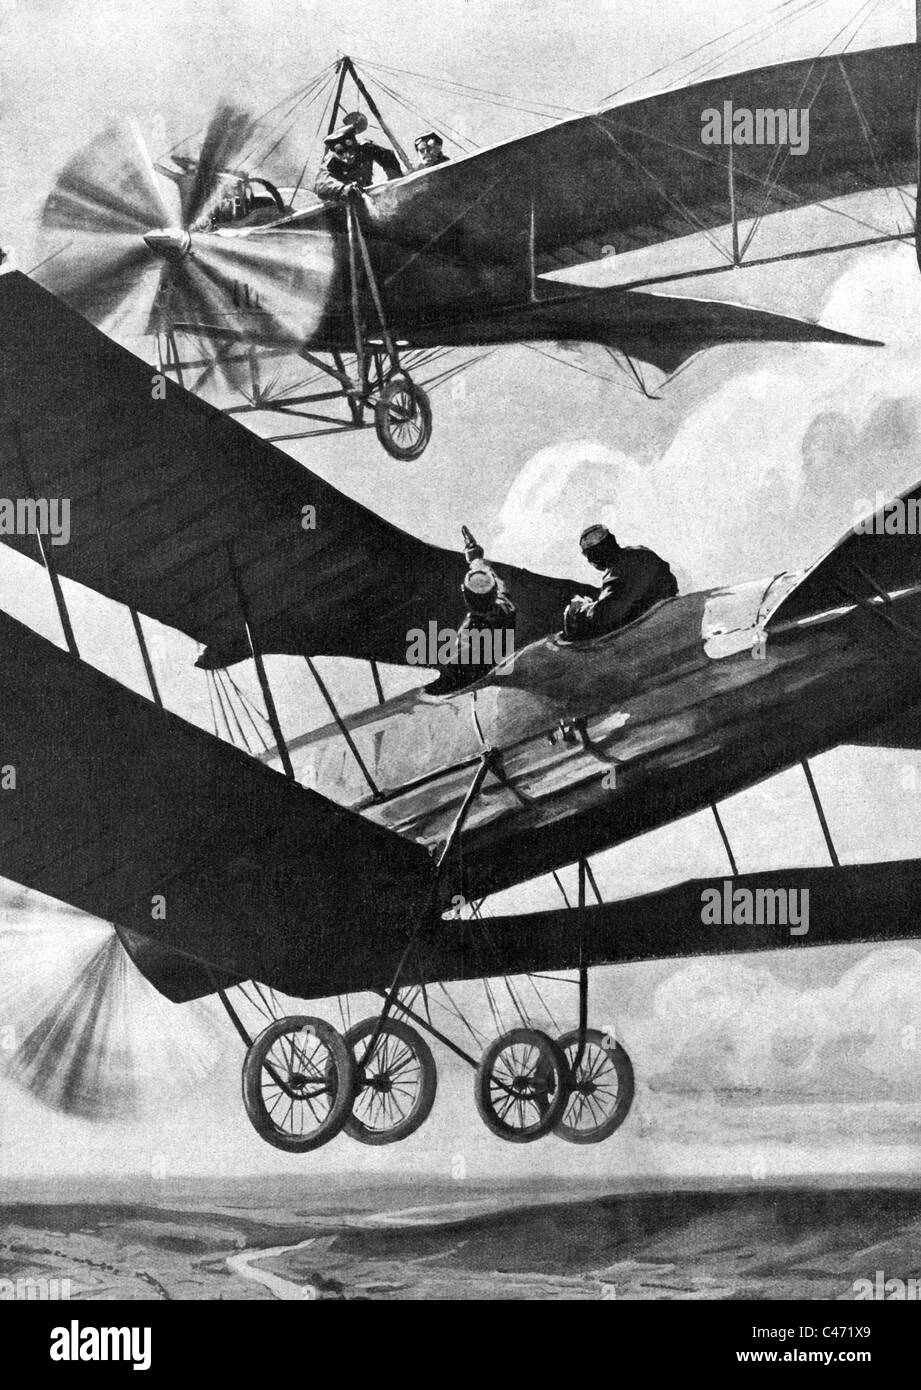 Aerial combat in World War One, 1914-1918 - Stock Image